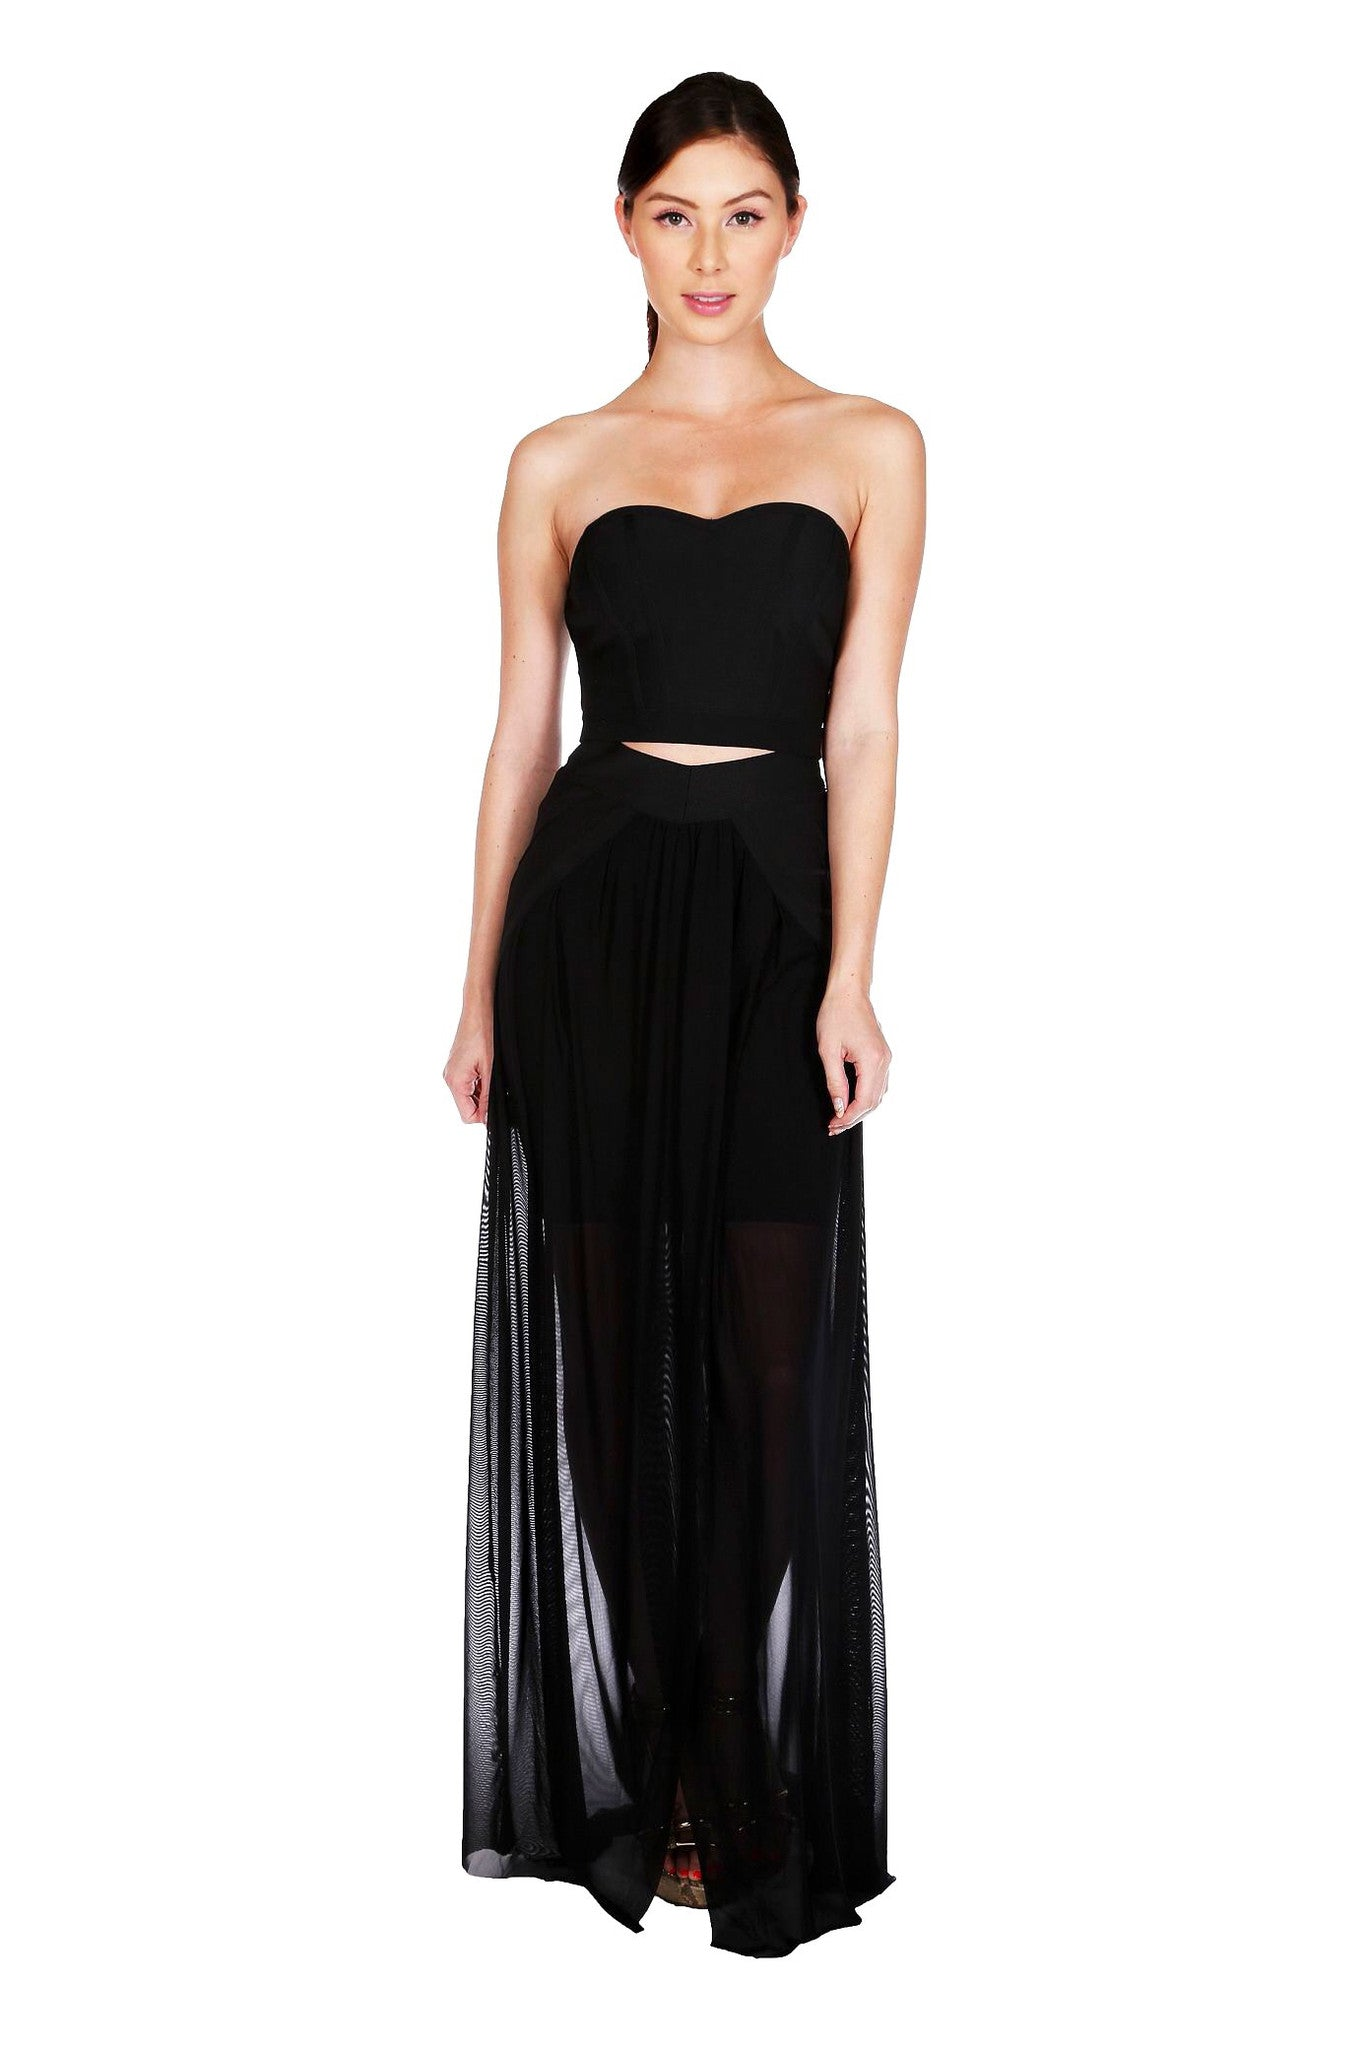 Naughty Grl Sweetheart Two Piece Maxi Dress - Black - NaughtyGrl